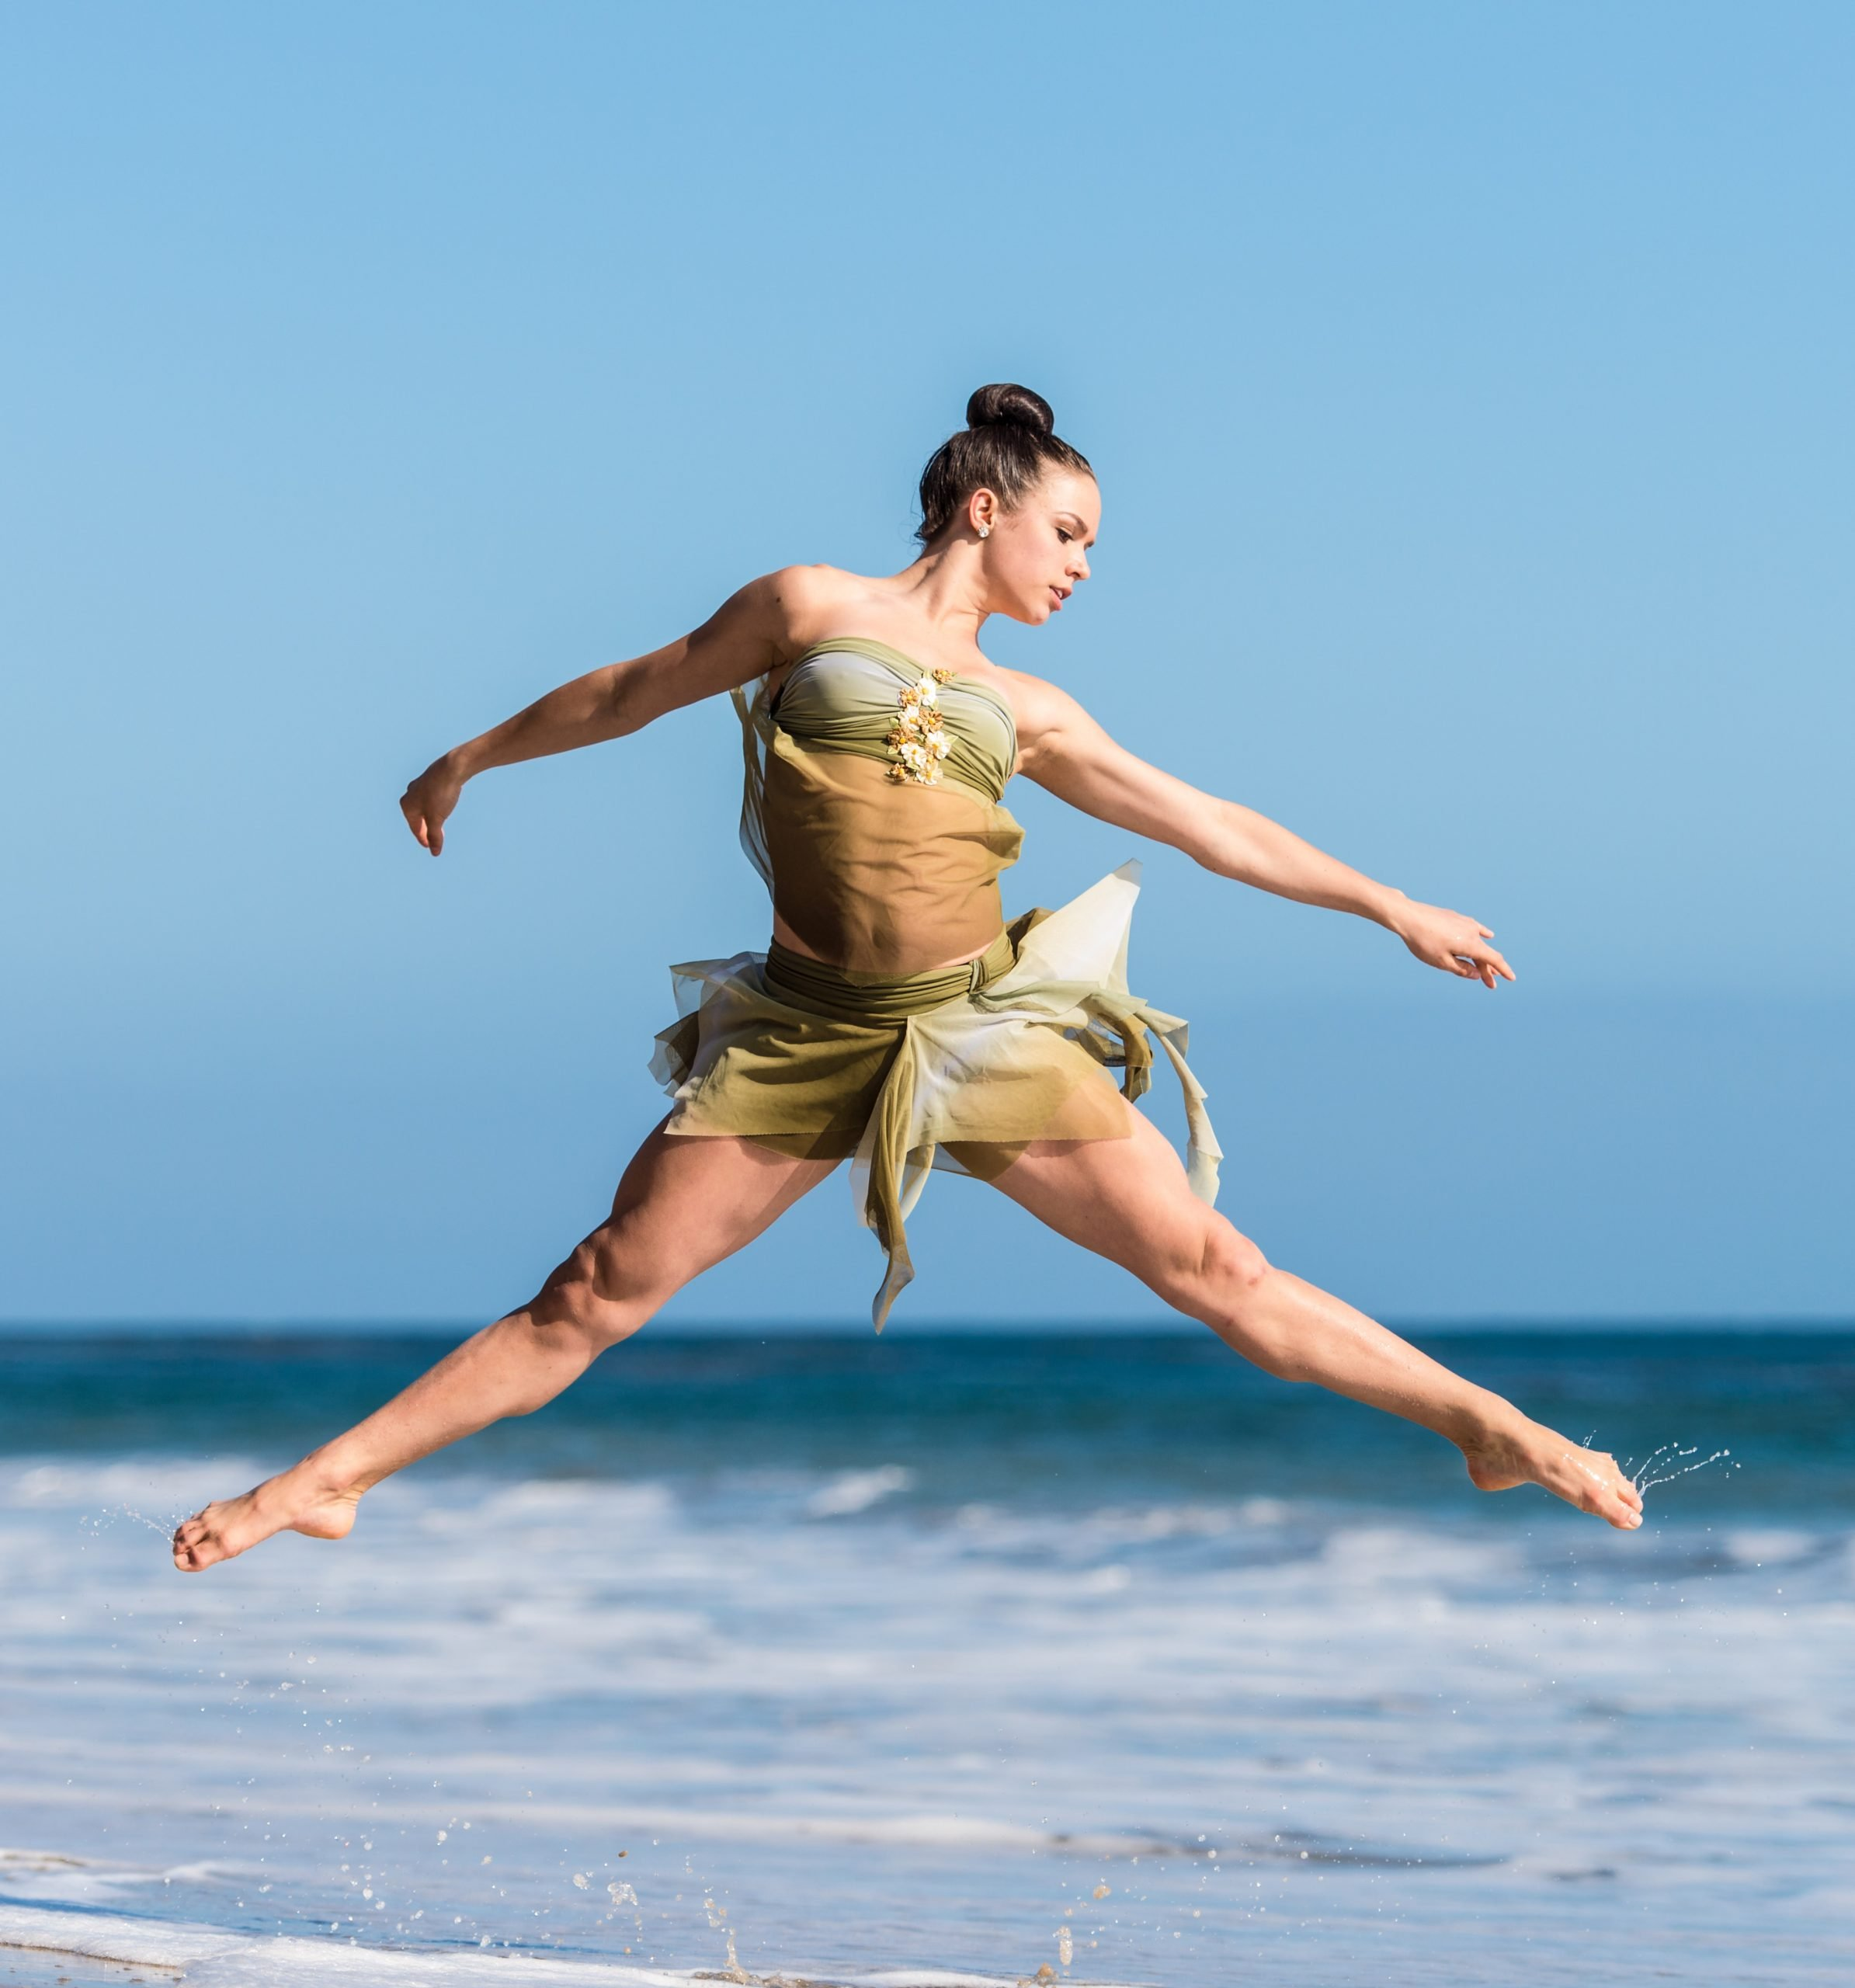 Dancer: Sydney Zmrzel Whenever I do a photo session with a dancer, I try to shoot some of our photos at the beach. California has some of the most beautiful beaches. Taking a dancer in their costume out of the studio and stage into the beautiful nature is one of my favorite things to do as a photographer. There is something magical about the ocean and I hope a hint of it will show up in my photos of these amazing dancers I get to work with.